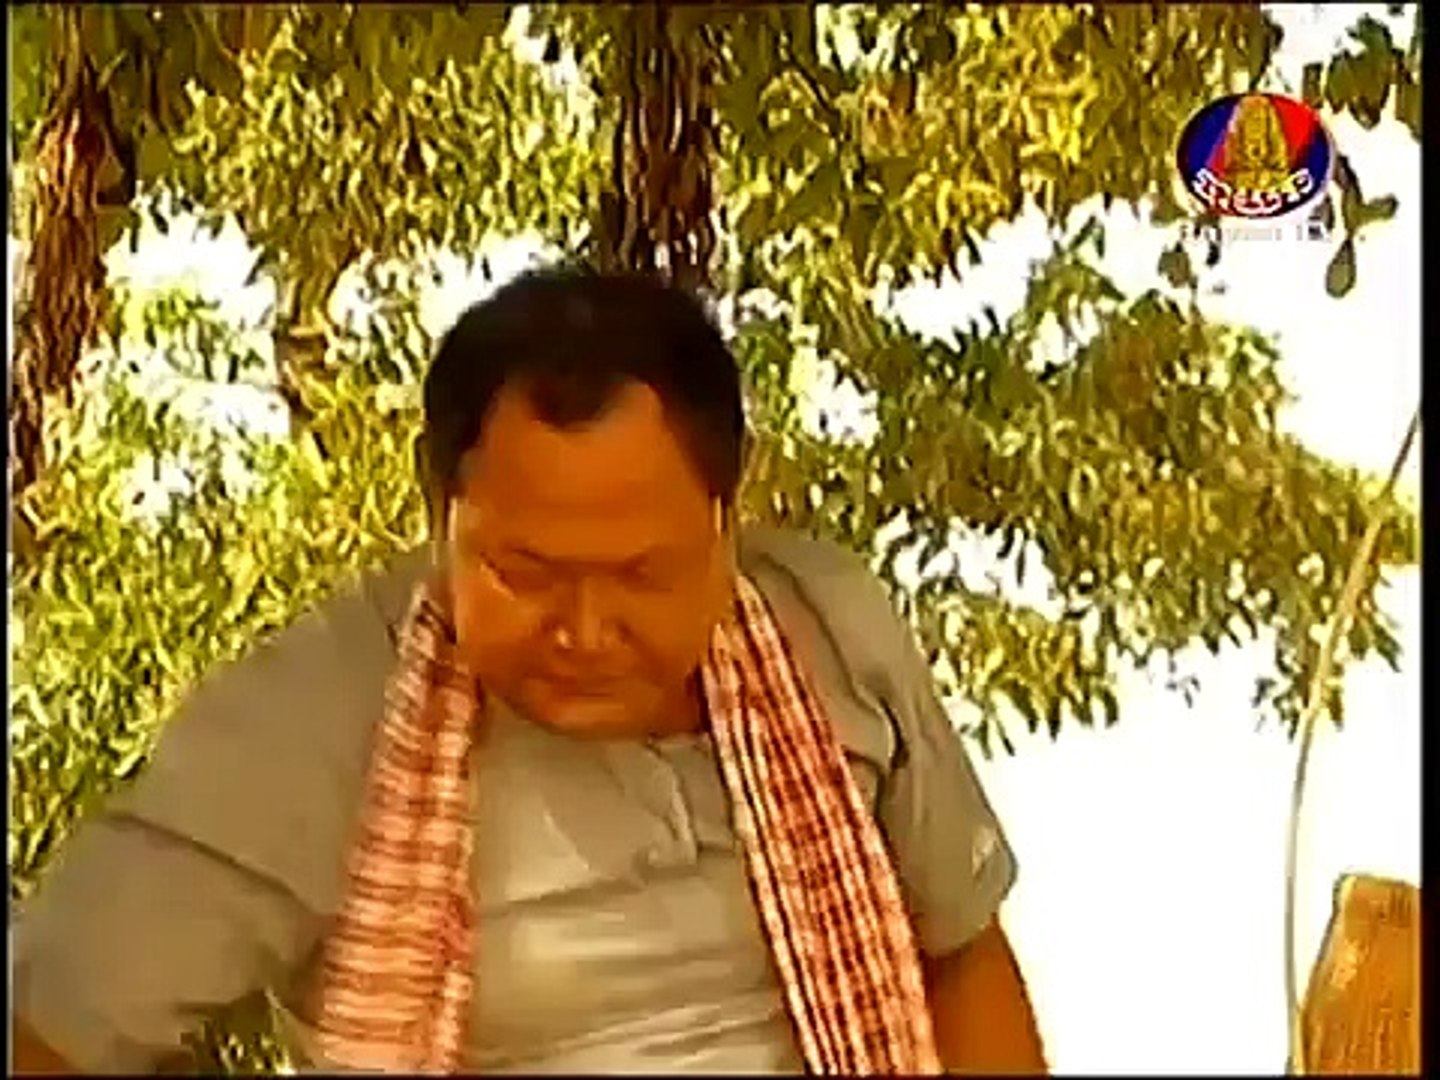 Khmer movie comedy 2015,A Lev Ep 03 - អាឡេវ,Khmer Movie Ah Lev (English Subtitles) News Khmer movie